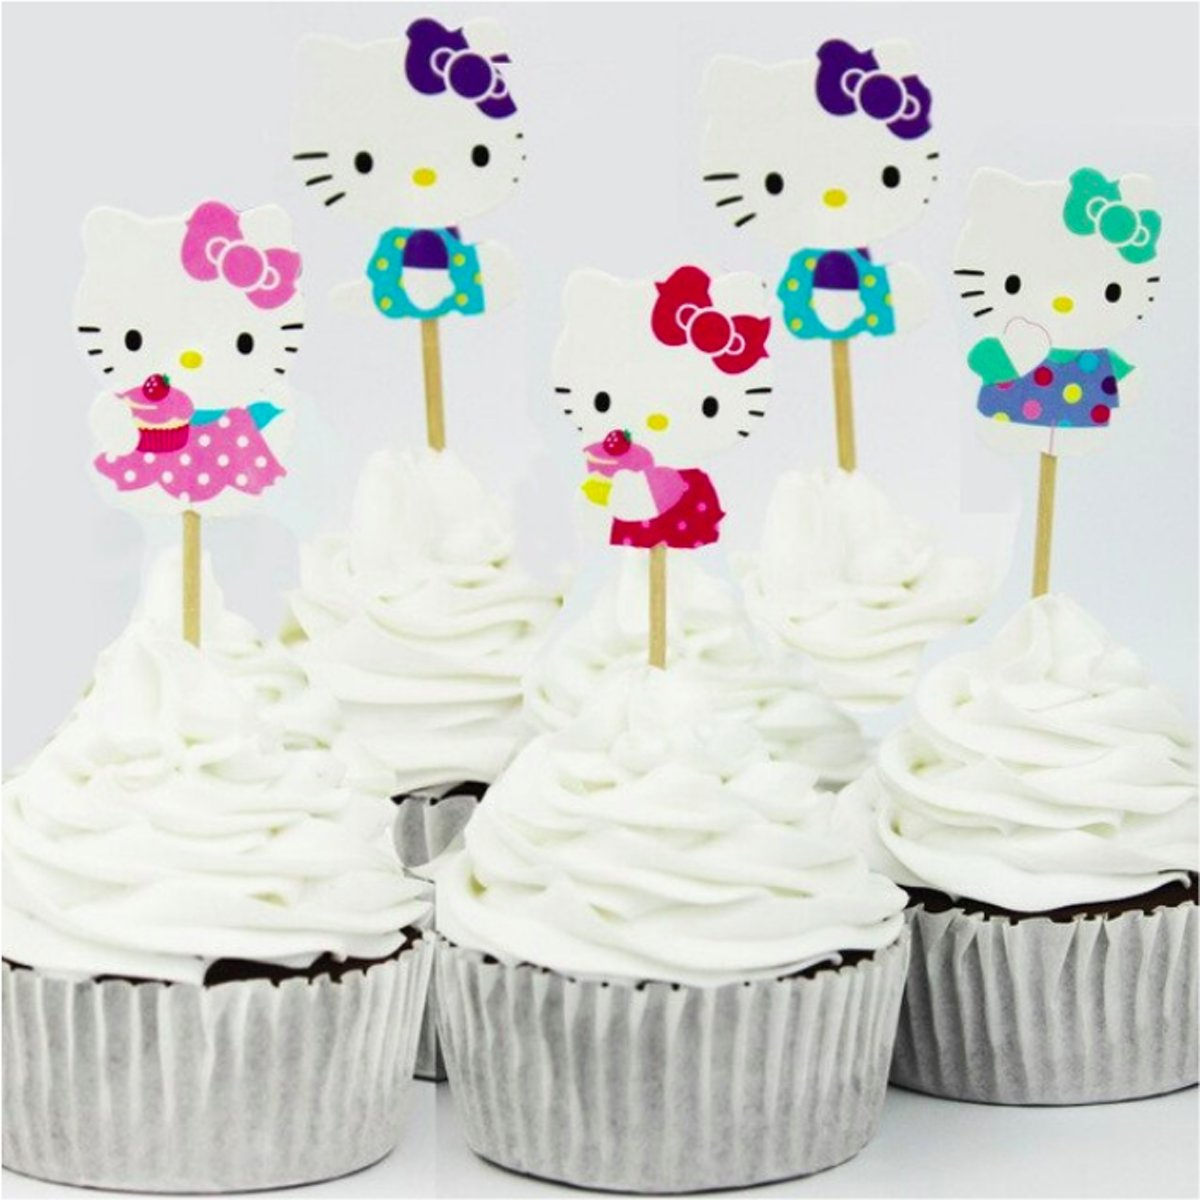 ProductsGoods - 24 x Leuke Hello Kitty coctailprikkers